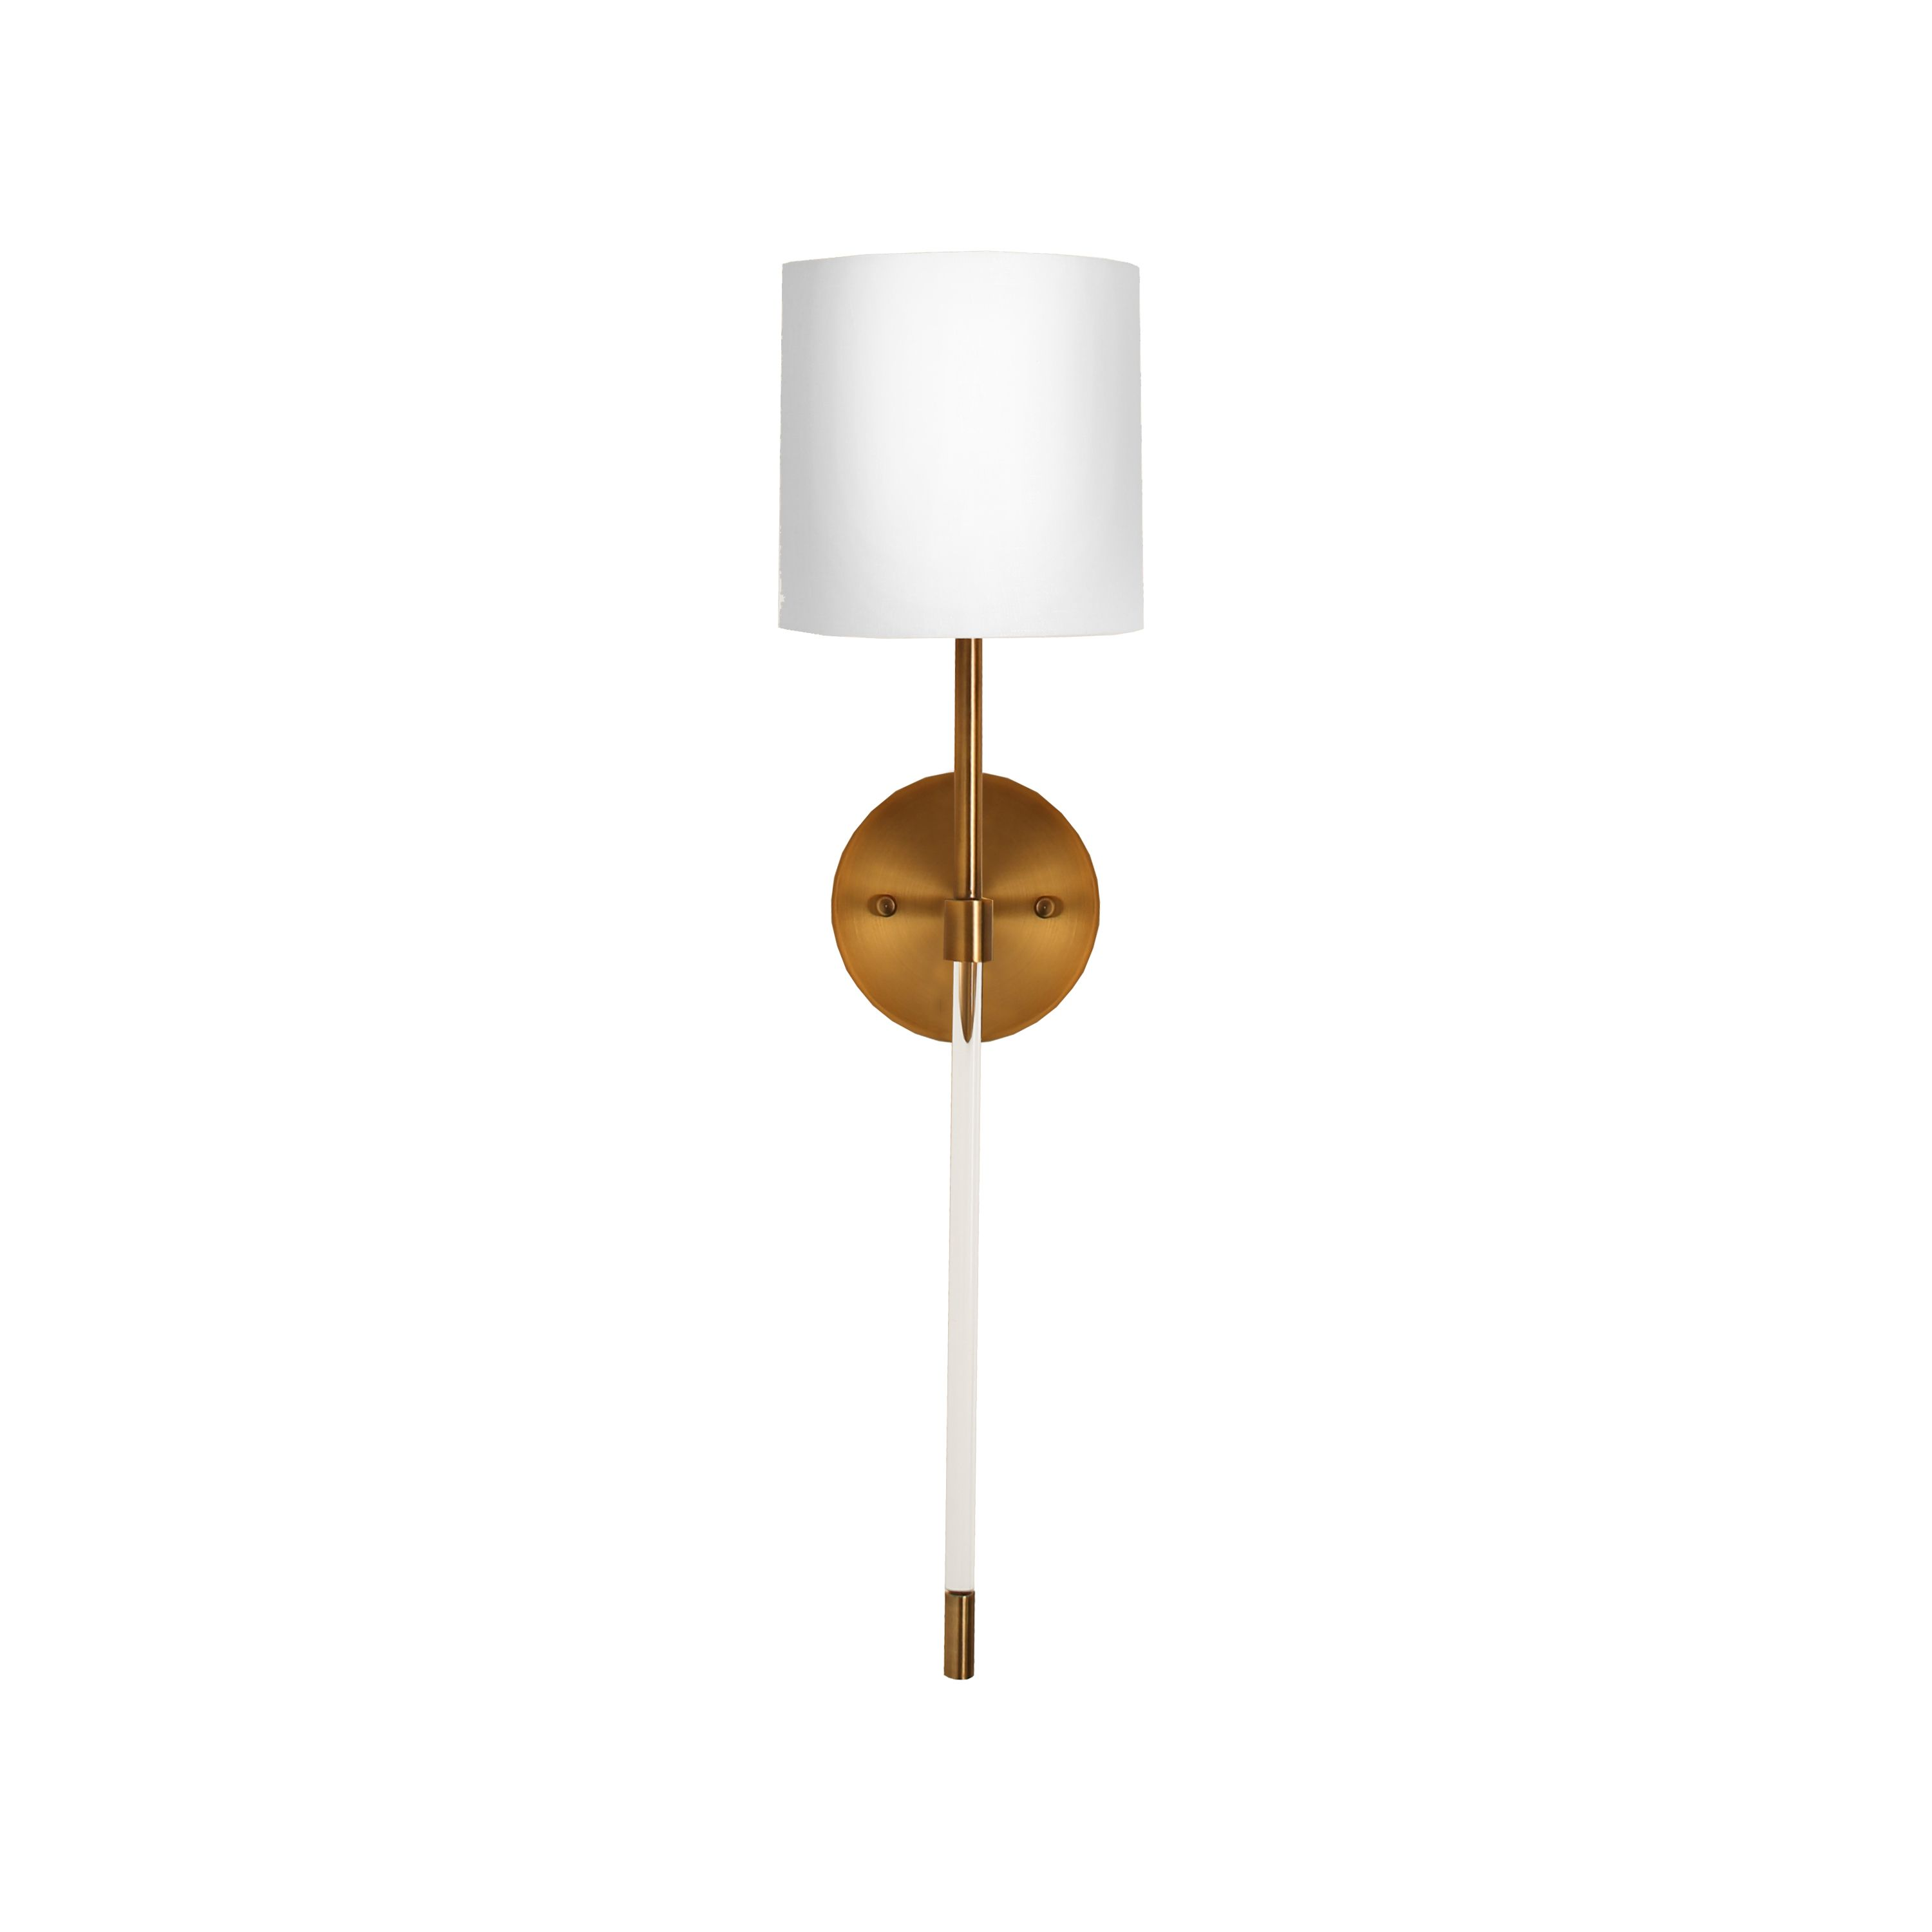 Acrylic Sconce with White Linen Shade in Antique Brass